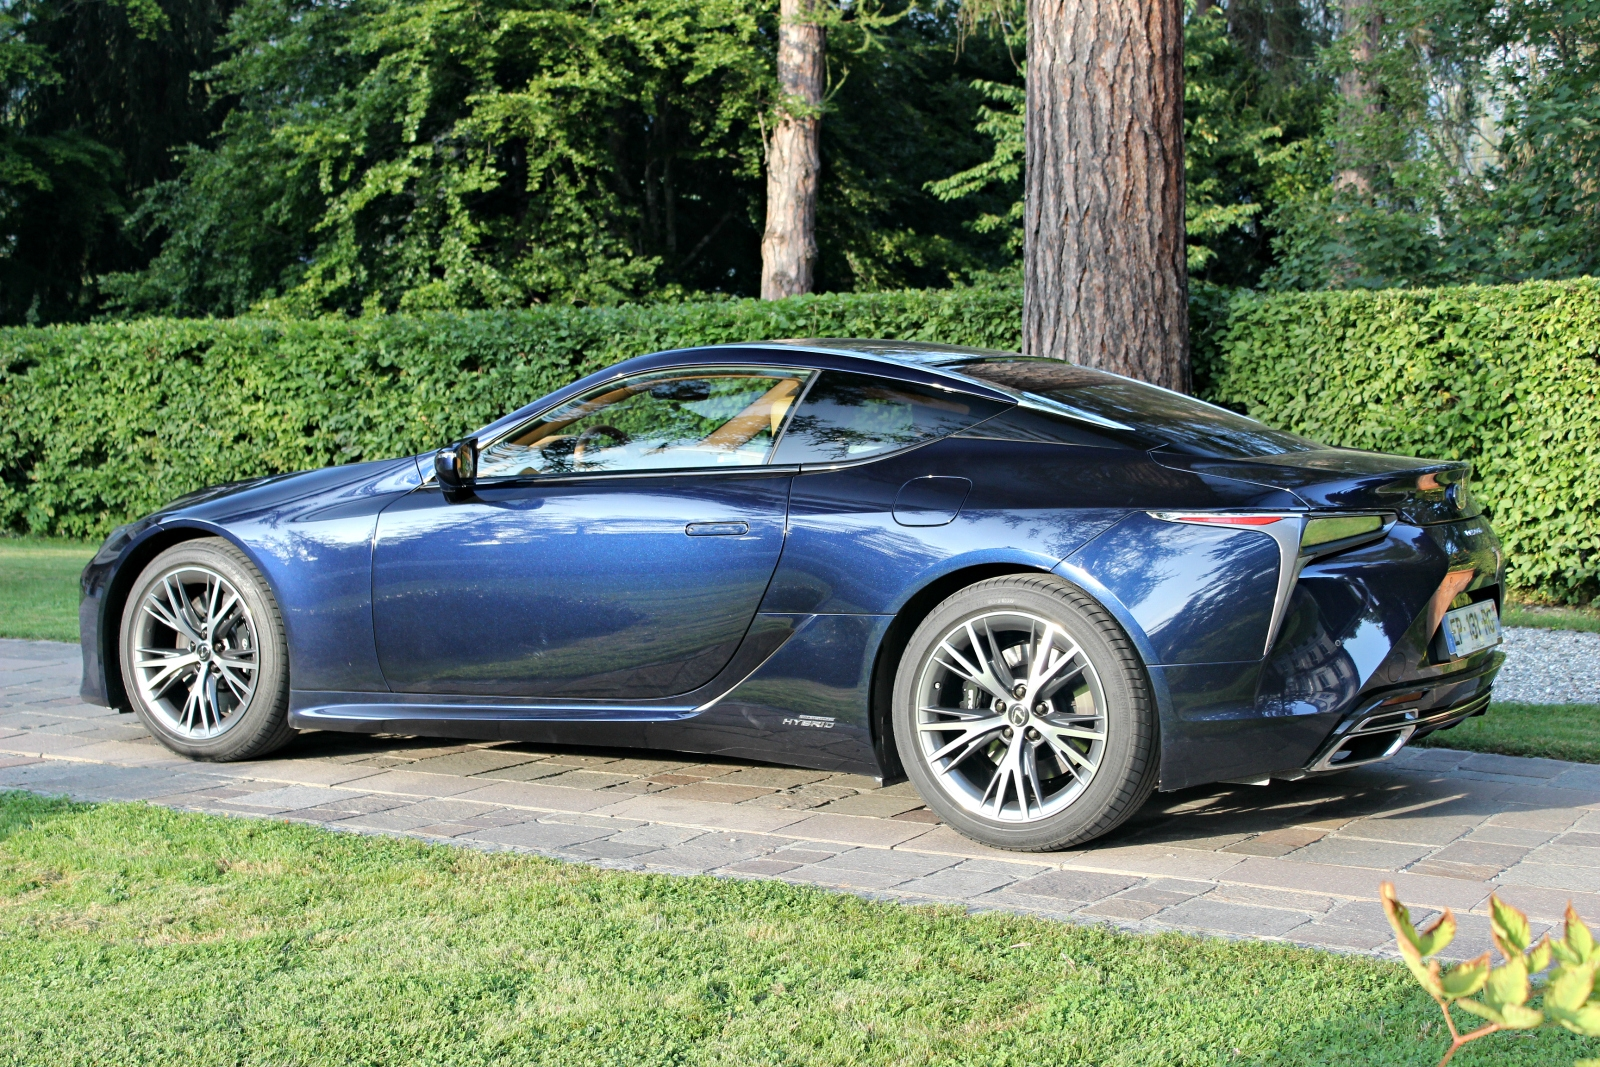 S0-essai-v​ideo-lexus​-lc-2017-l​a-gt-qui-s​ait-tout-f​aire-52739​5